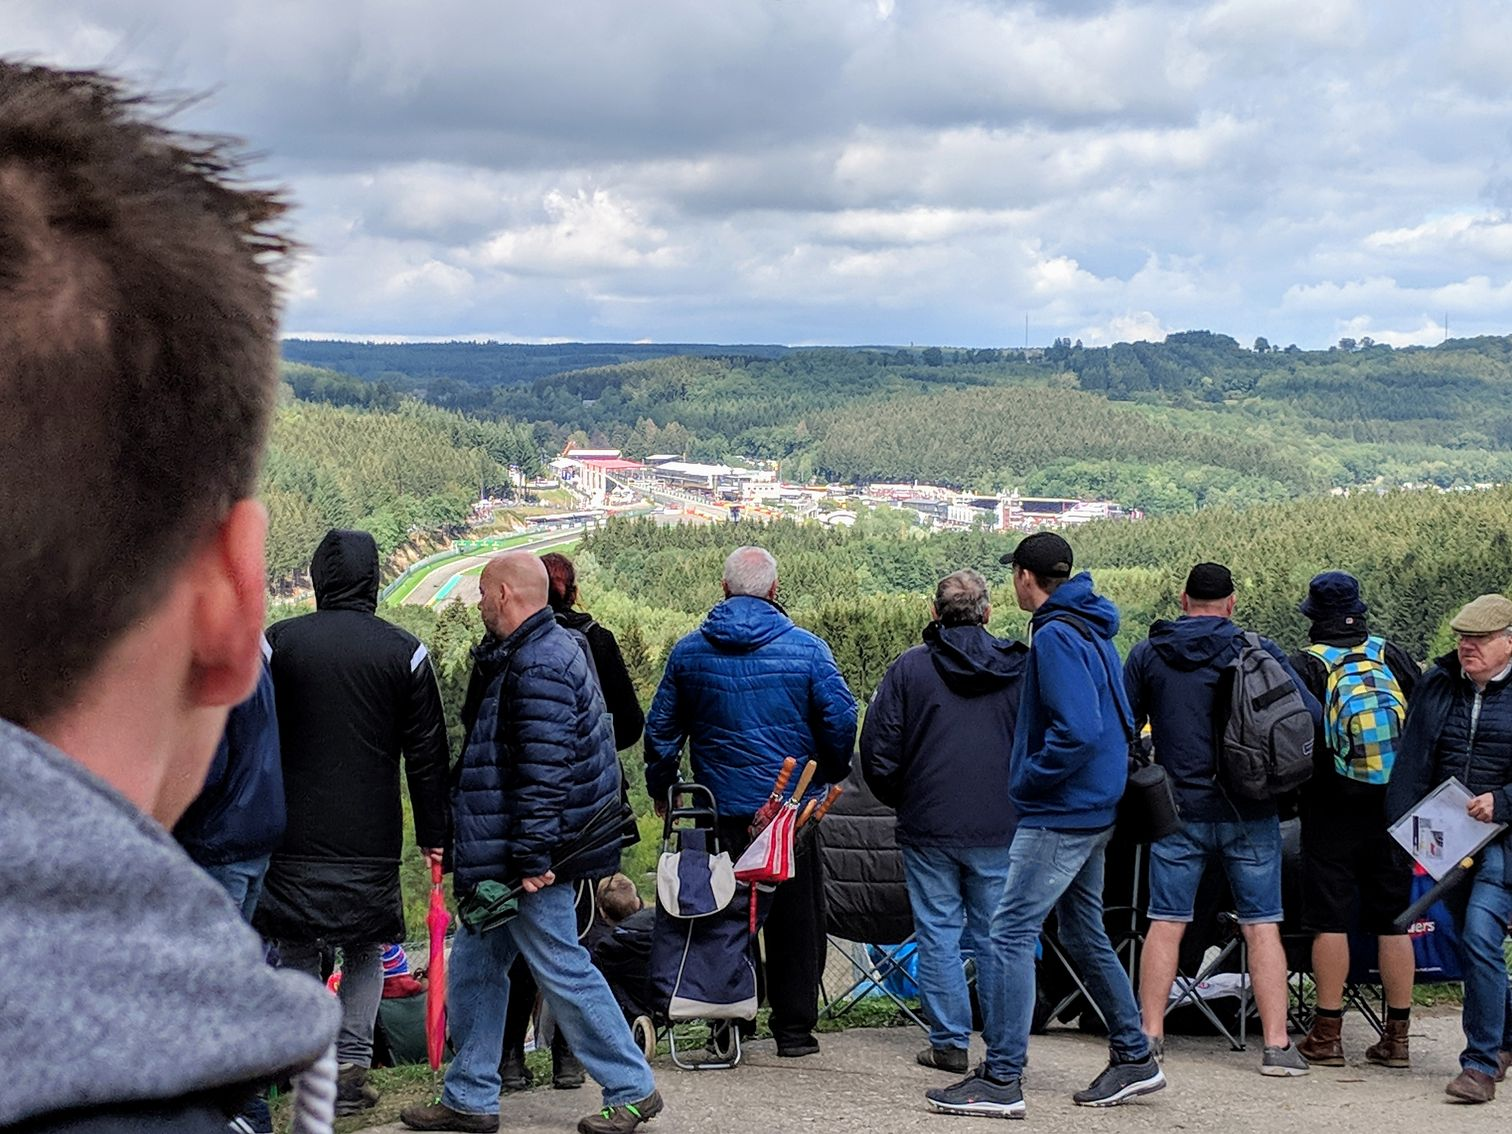 Crowds, a view of the Circuit de Spa-Francorchamps and surrounding countryside